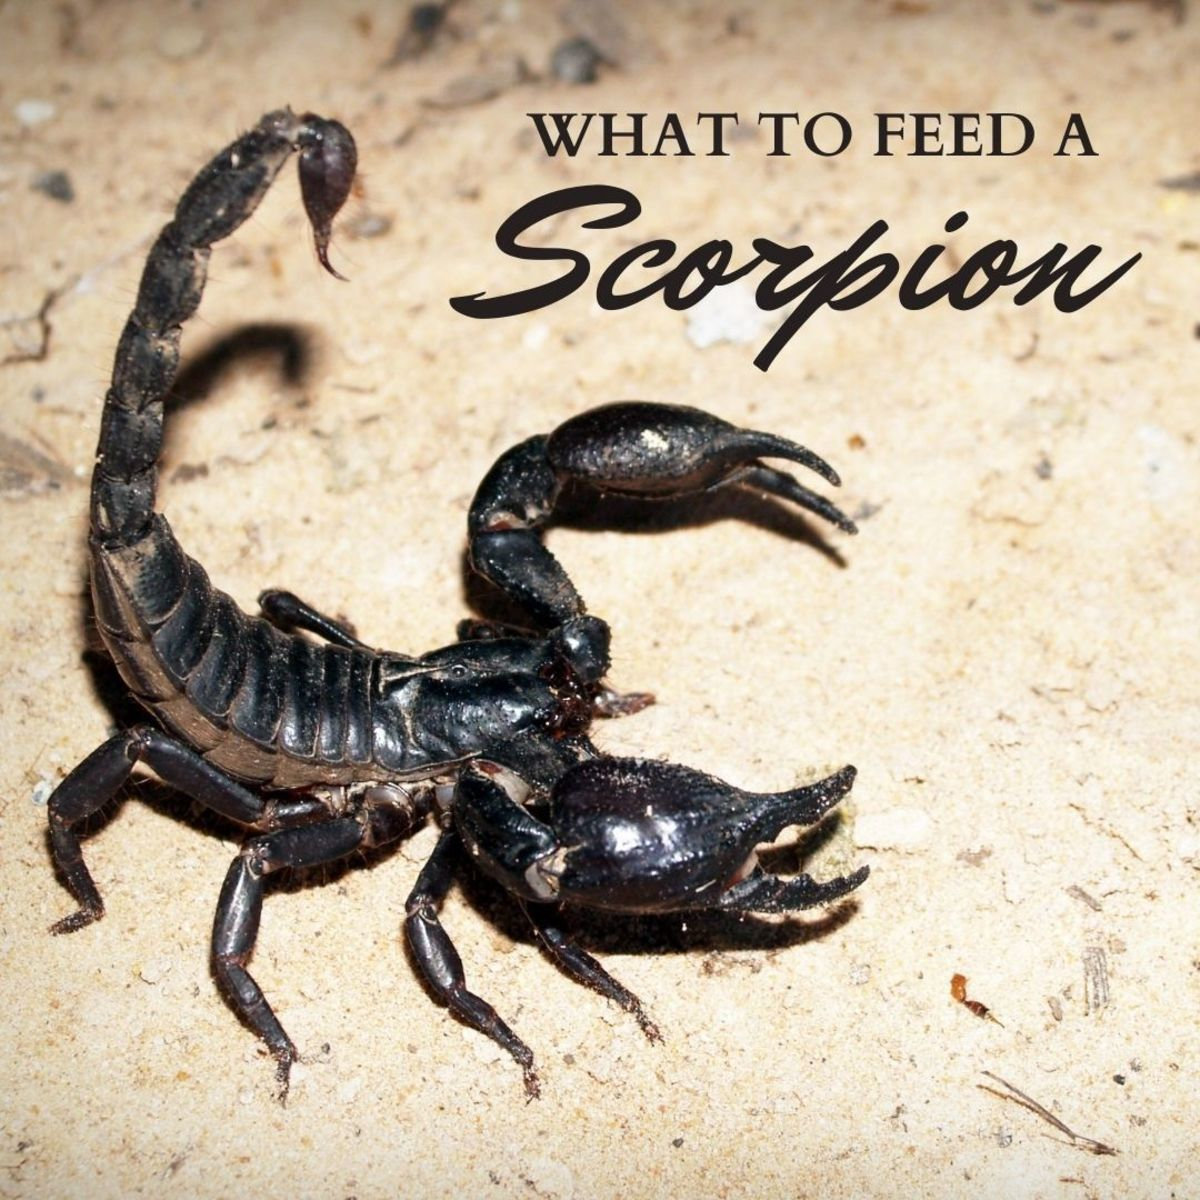 What to Feed Your Pet Scorpion